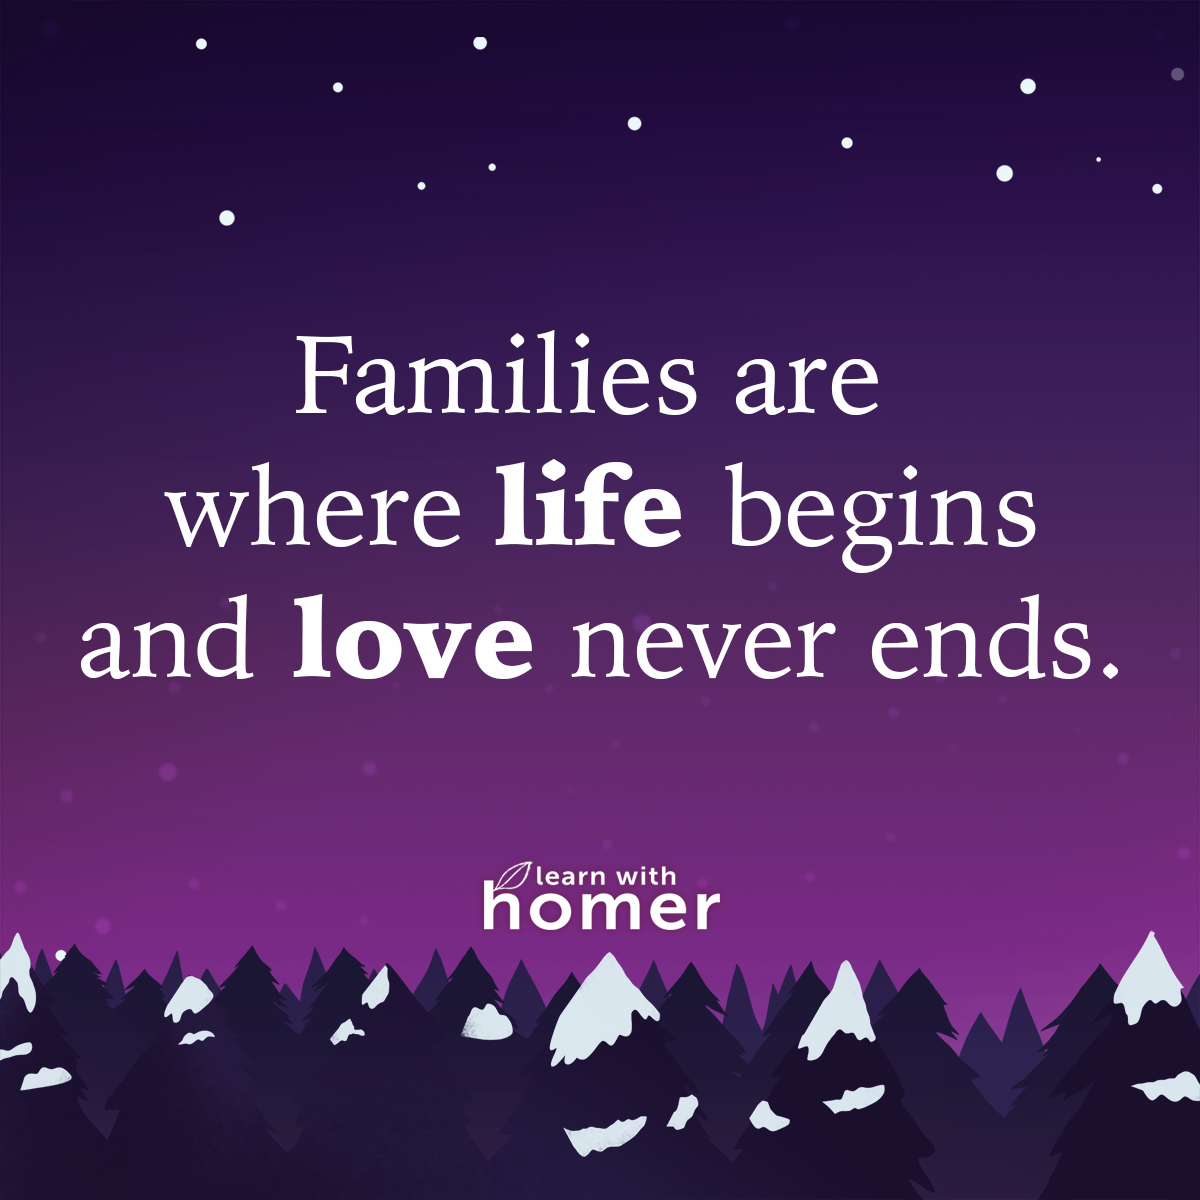 #LearnwithHomer #quote